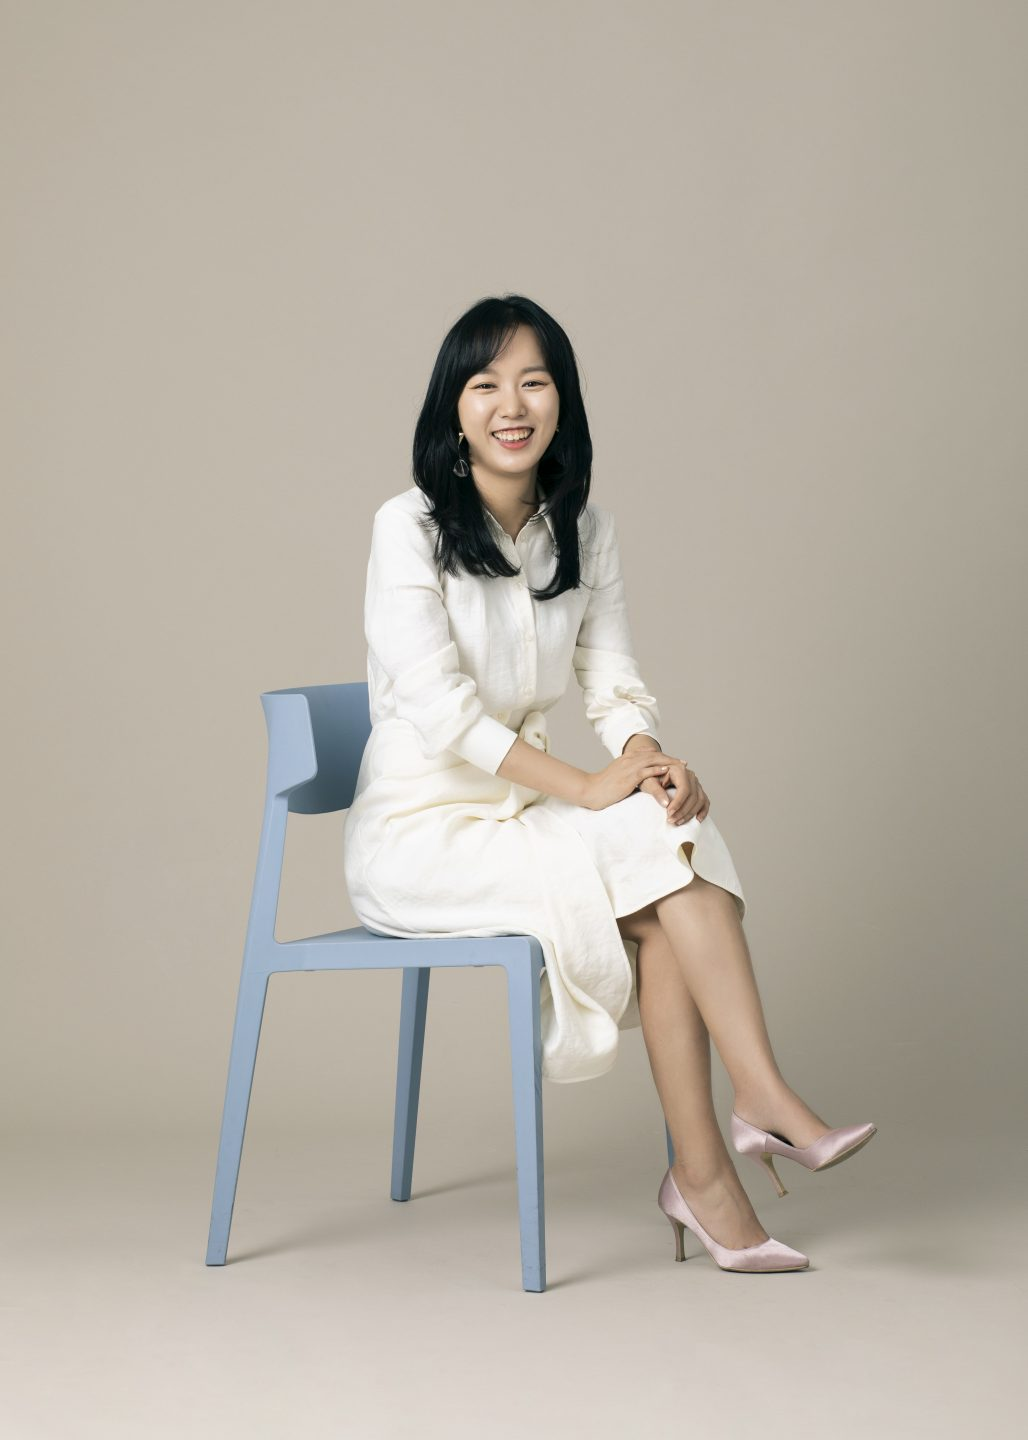 The First Sign Of Sensitive Skin? Dryness, Says BEIGIC Founder Kate Namgung